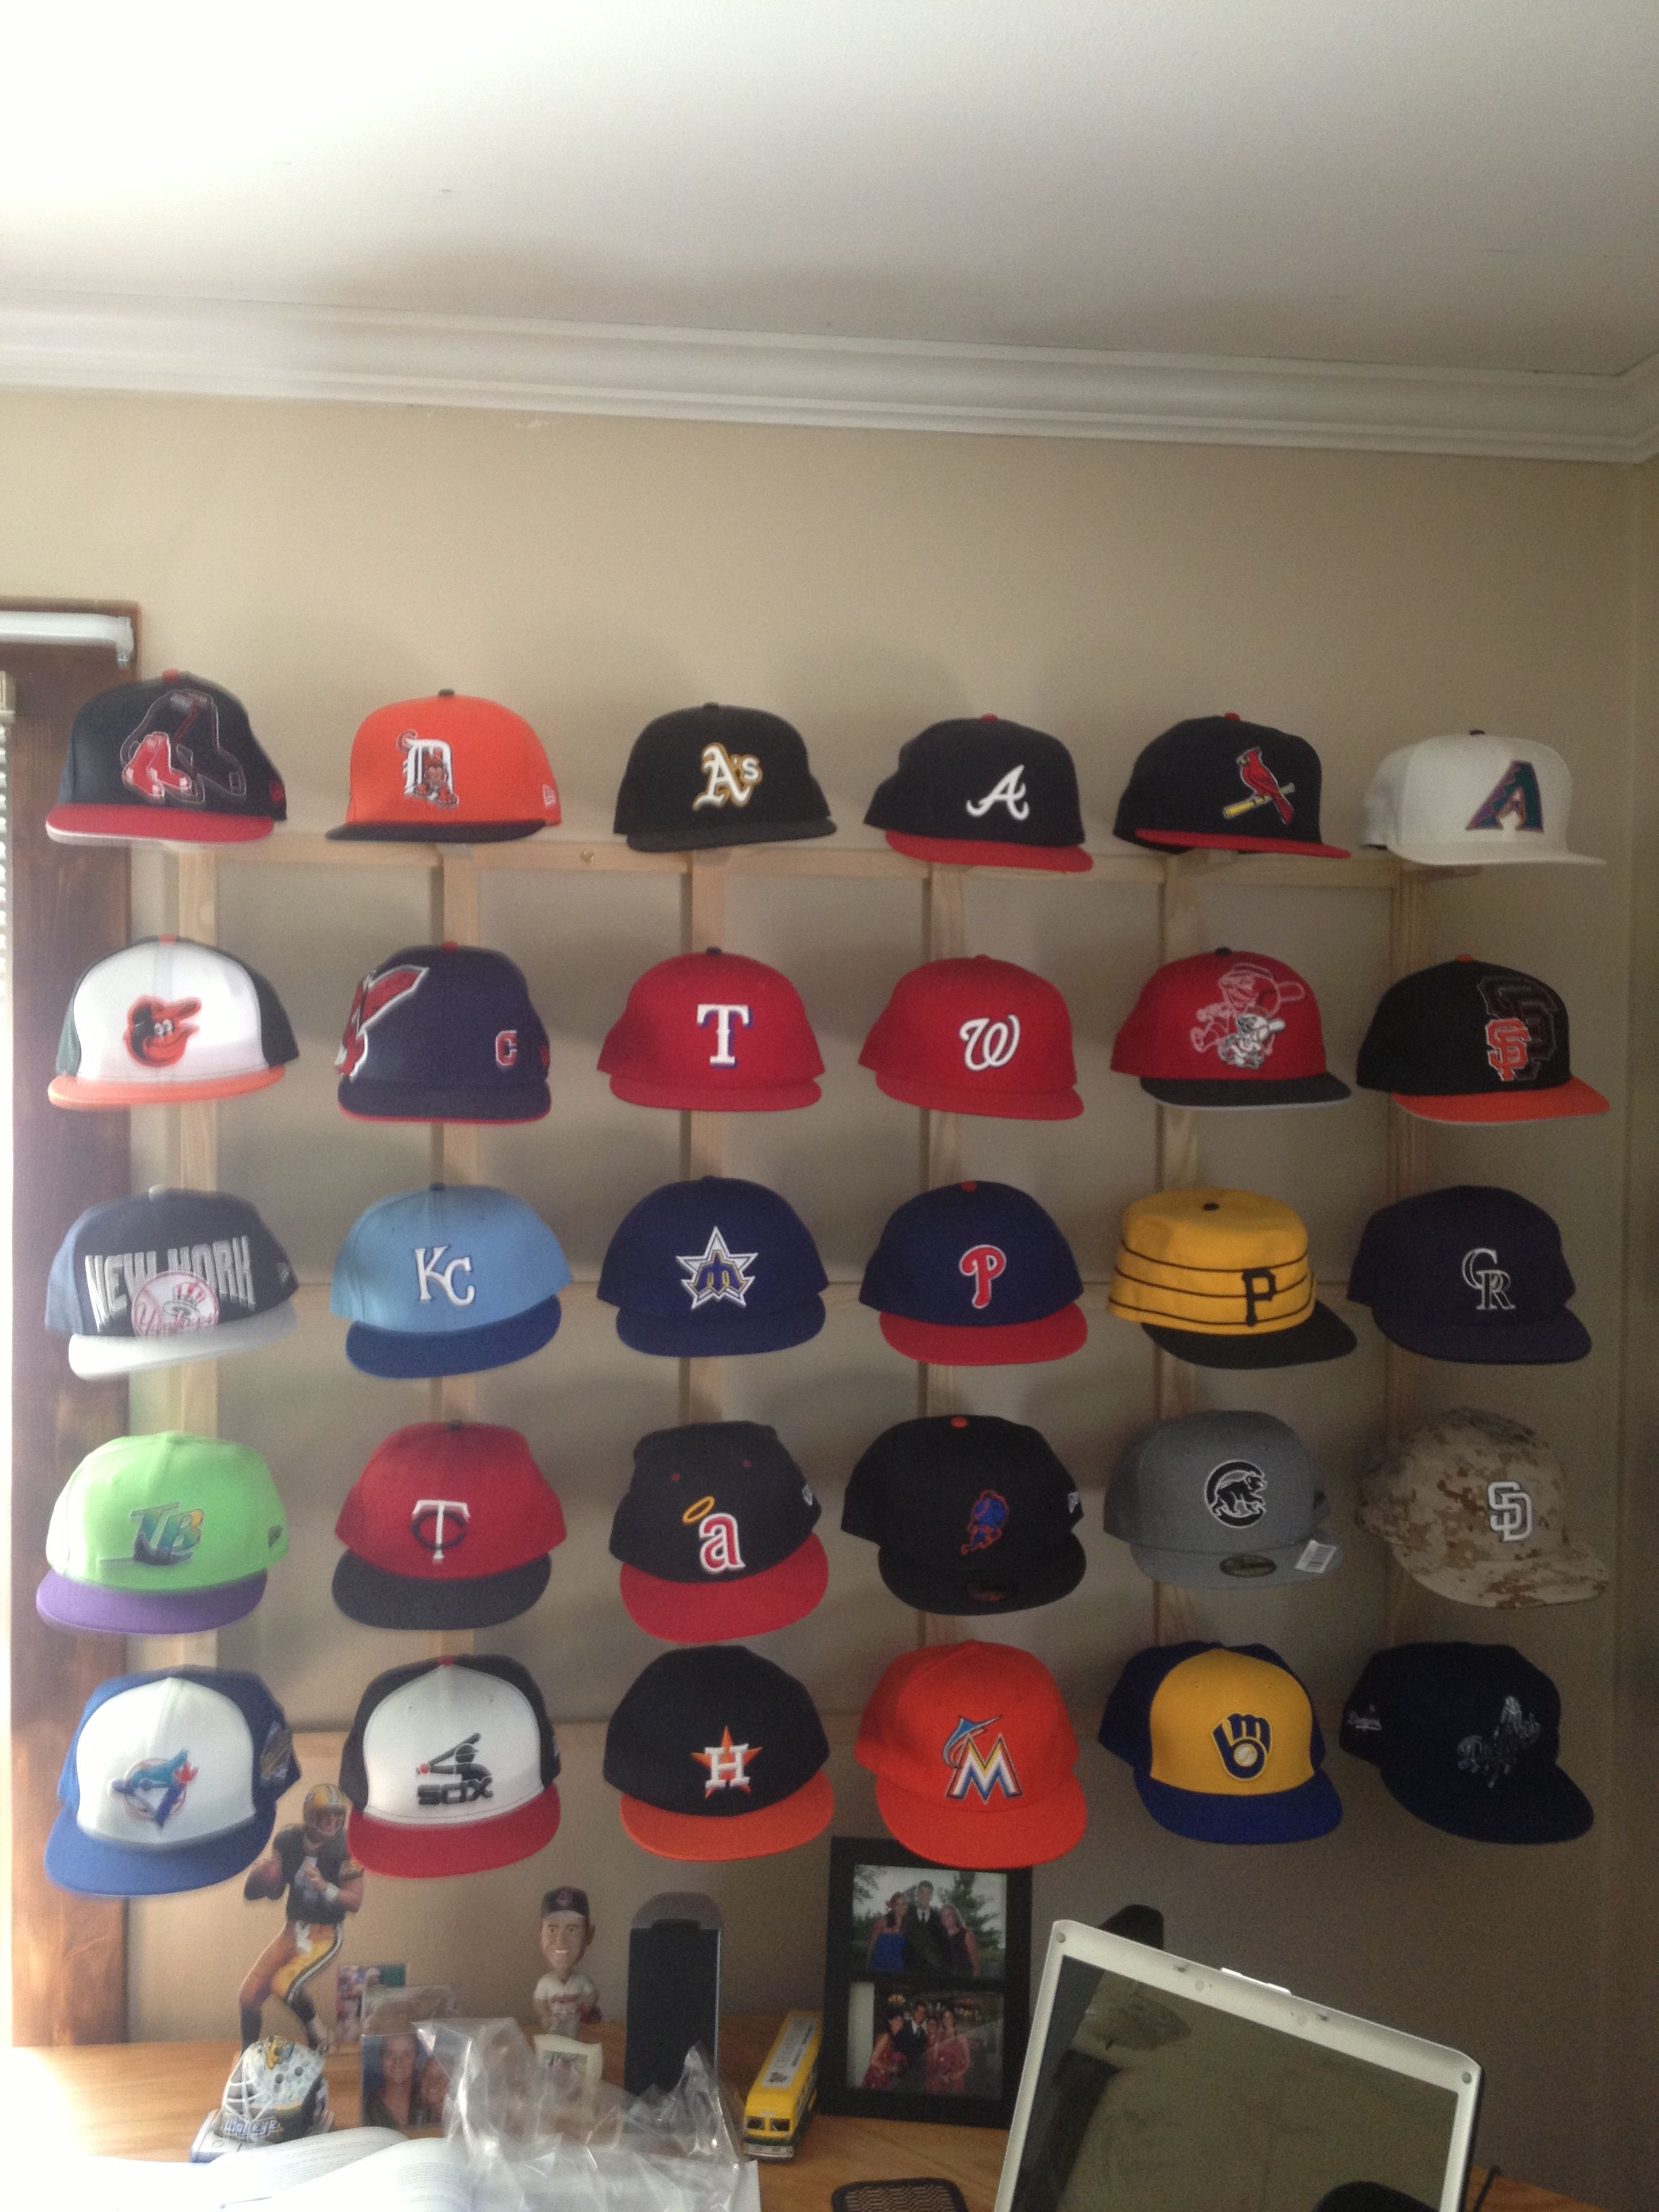 8372887d294bb My hat collection is complete... One hat from each team and a sweet way to  display it... I think my dad and I should patten this design